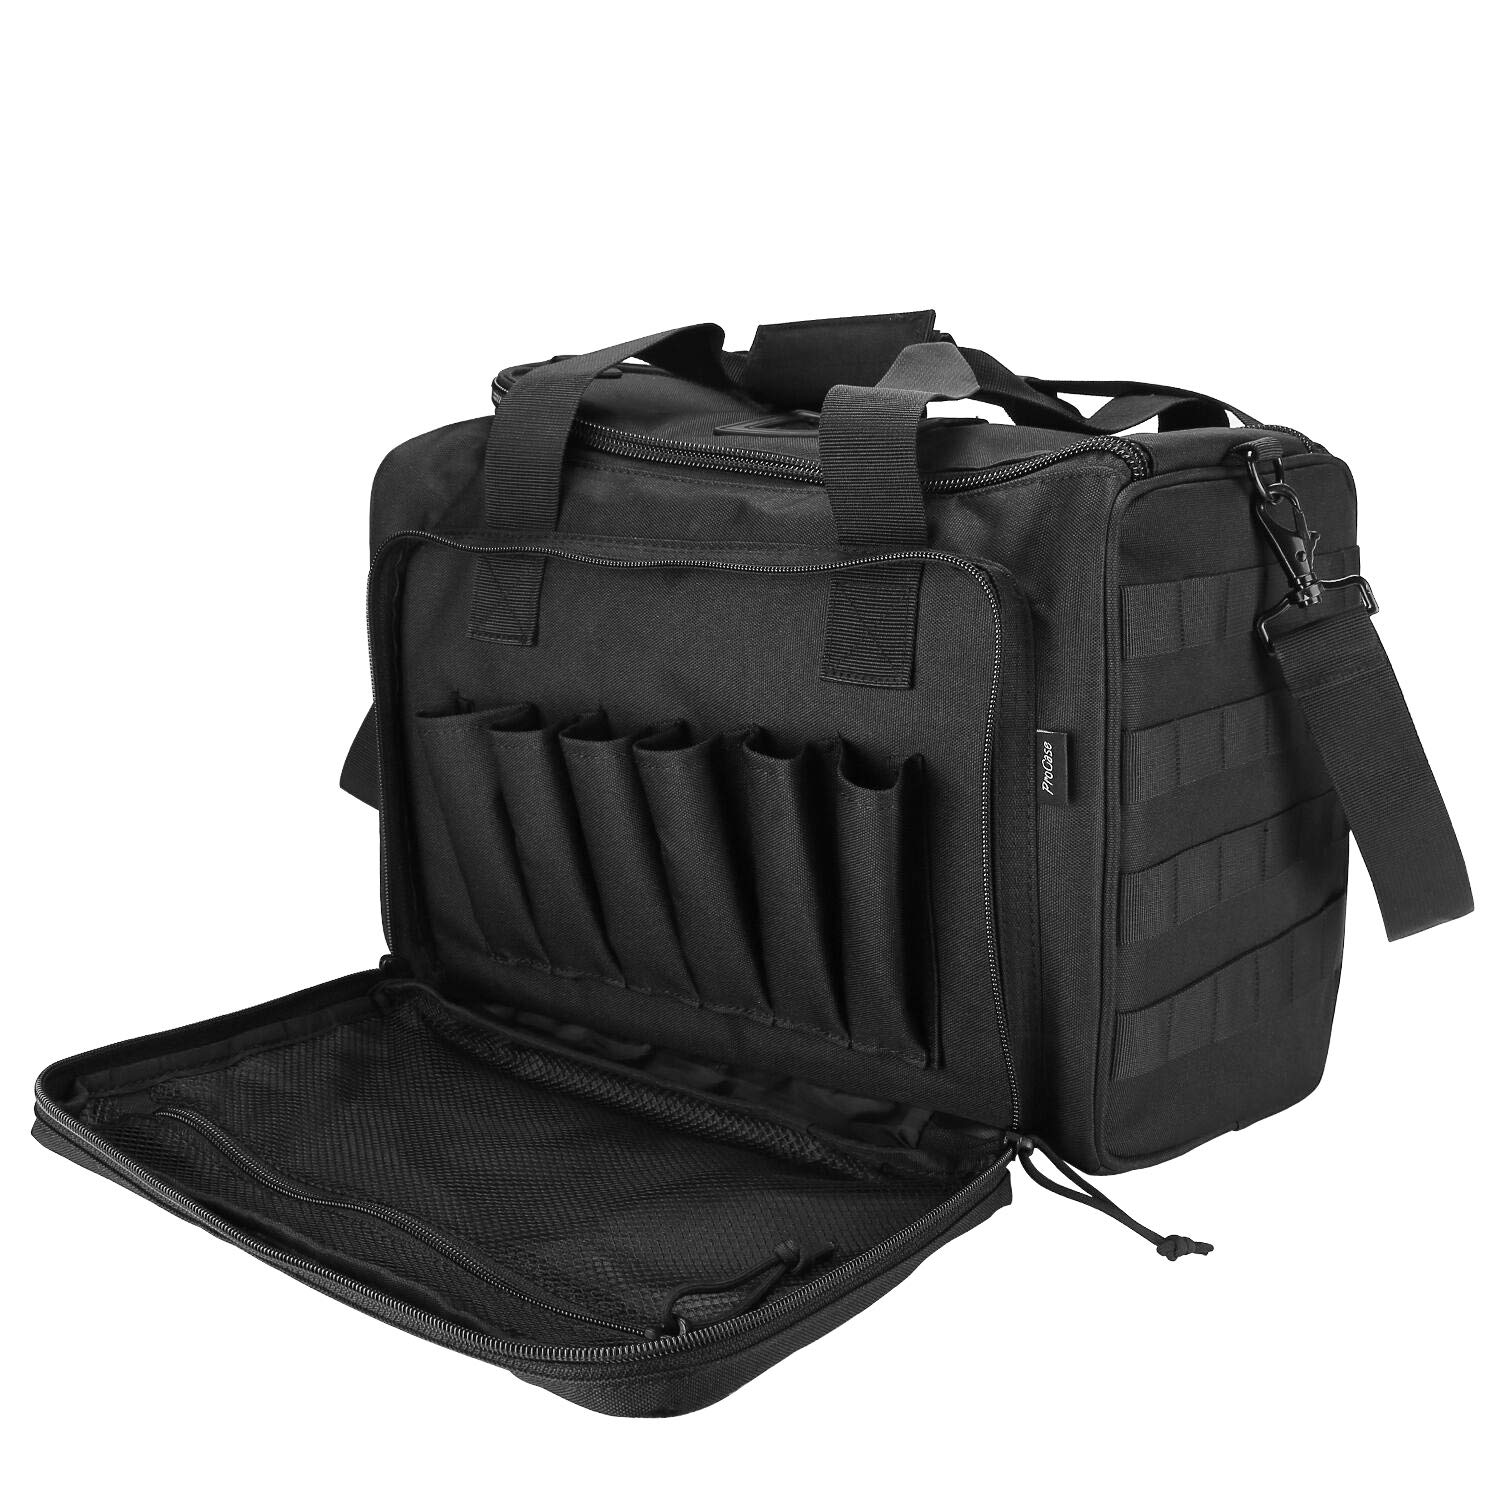 ProCase Tactical Gun Range Bag for Handguns, Pistols and Ammo, Large Shooting Range Duffle Bags for Magazine Shooting Gear Accessories for Hunting Shooting Range Sport Competetion -Black by ProCase